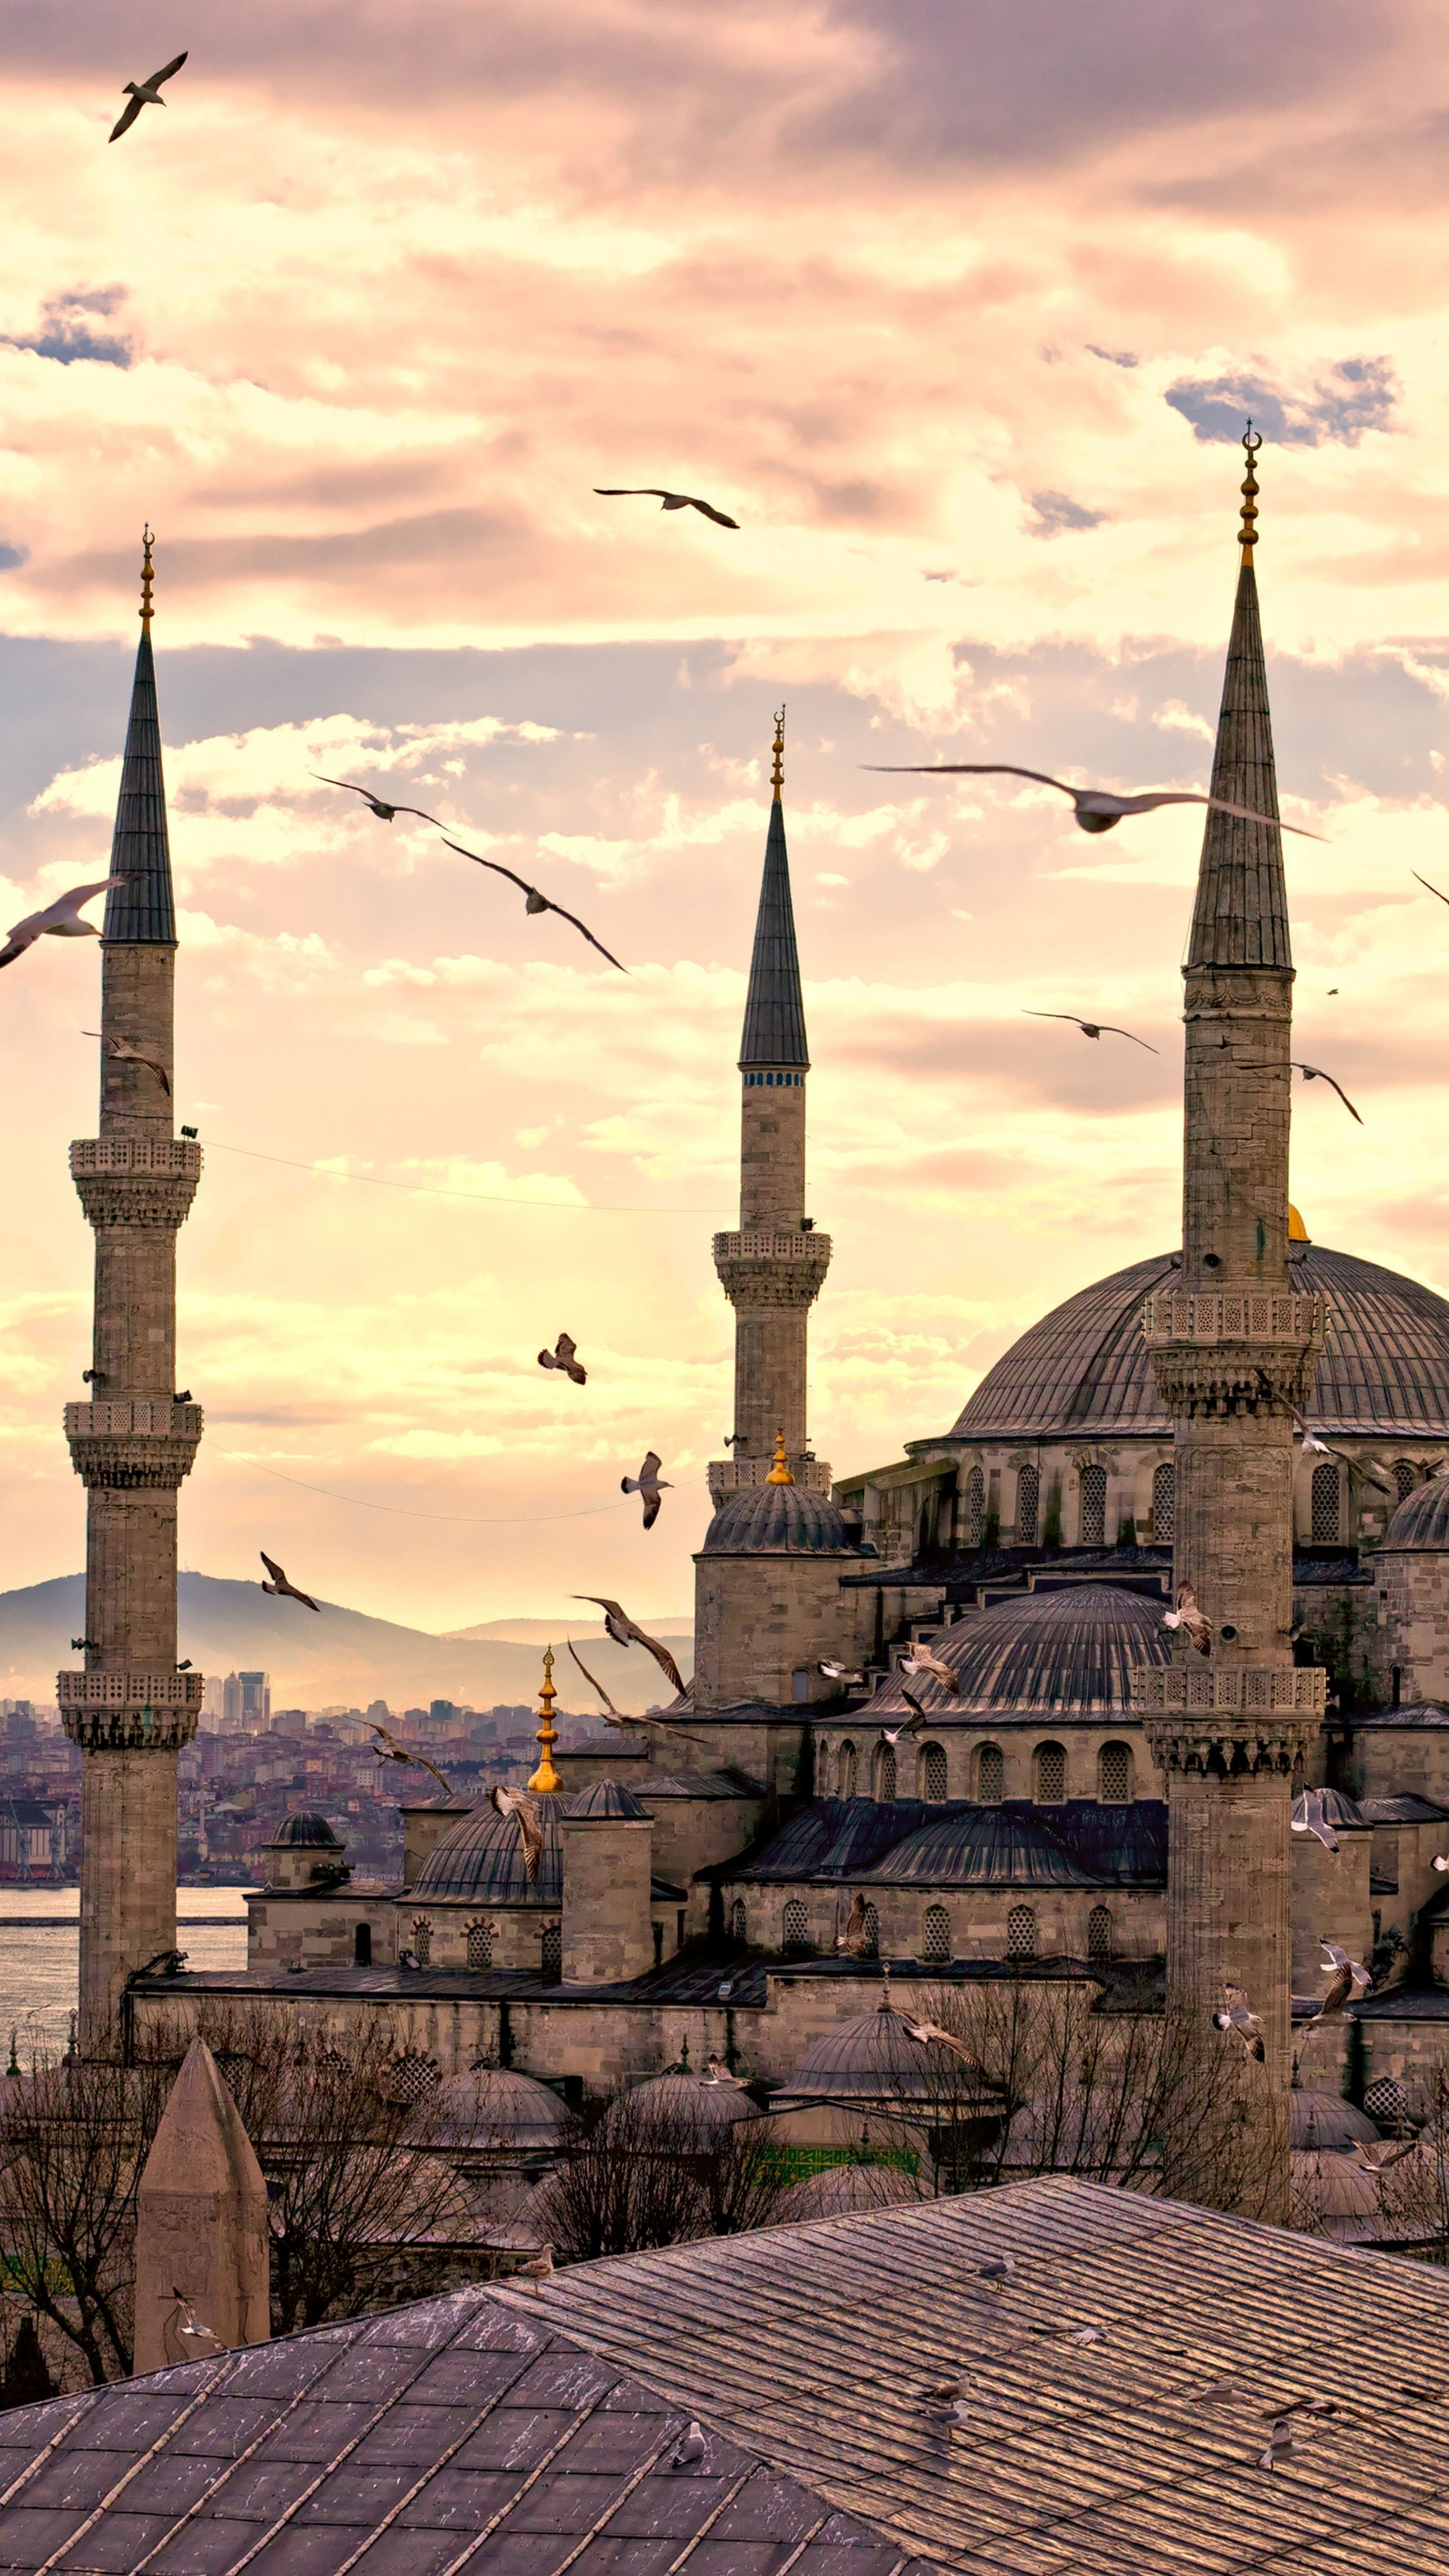 Best Quotes Wallpapers Hd For Desktop Wallpaper Sultan Ahmed Mosque Istanbul Turkey Travel